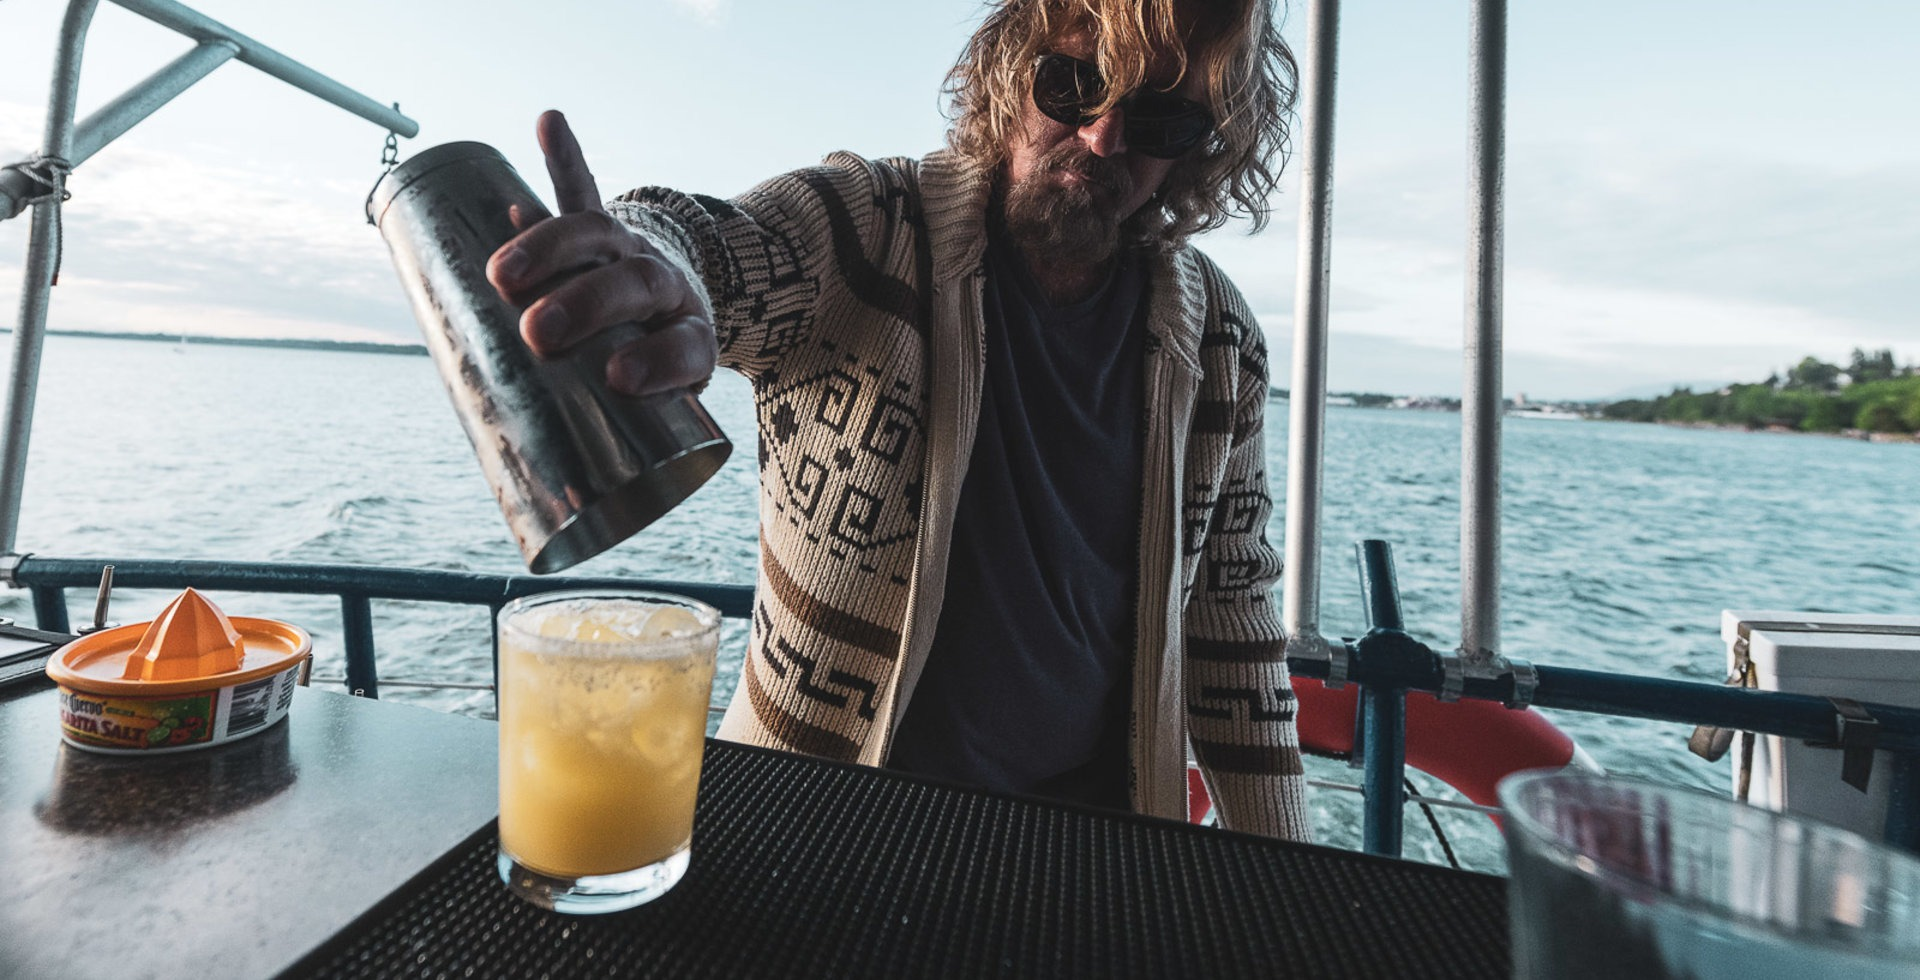 Wick, the purveyor of funk—and good cocktails. Photo: Paris Gore